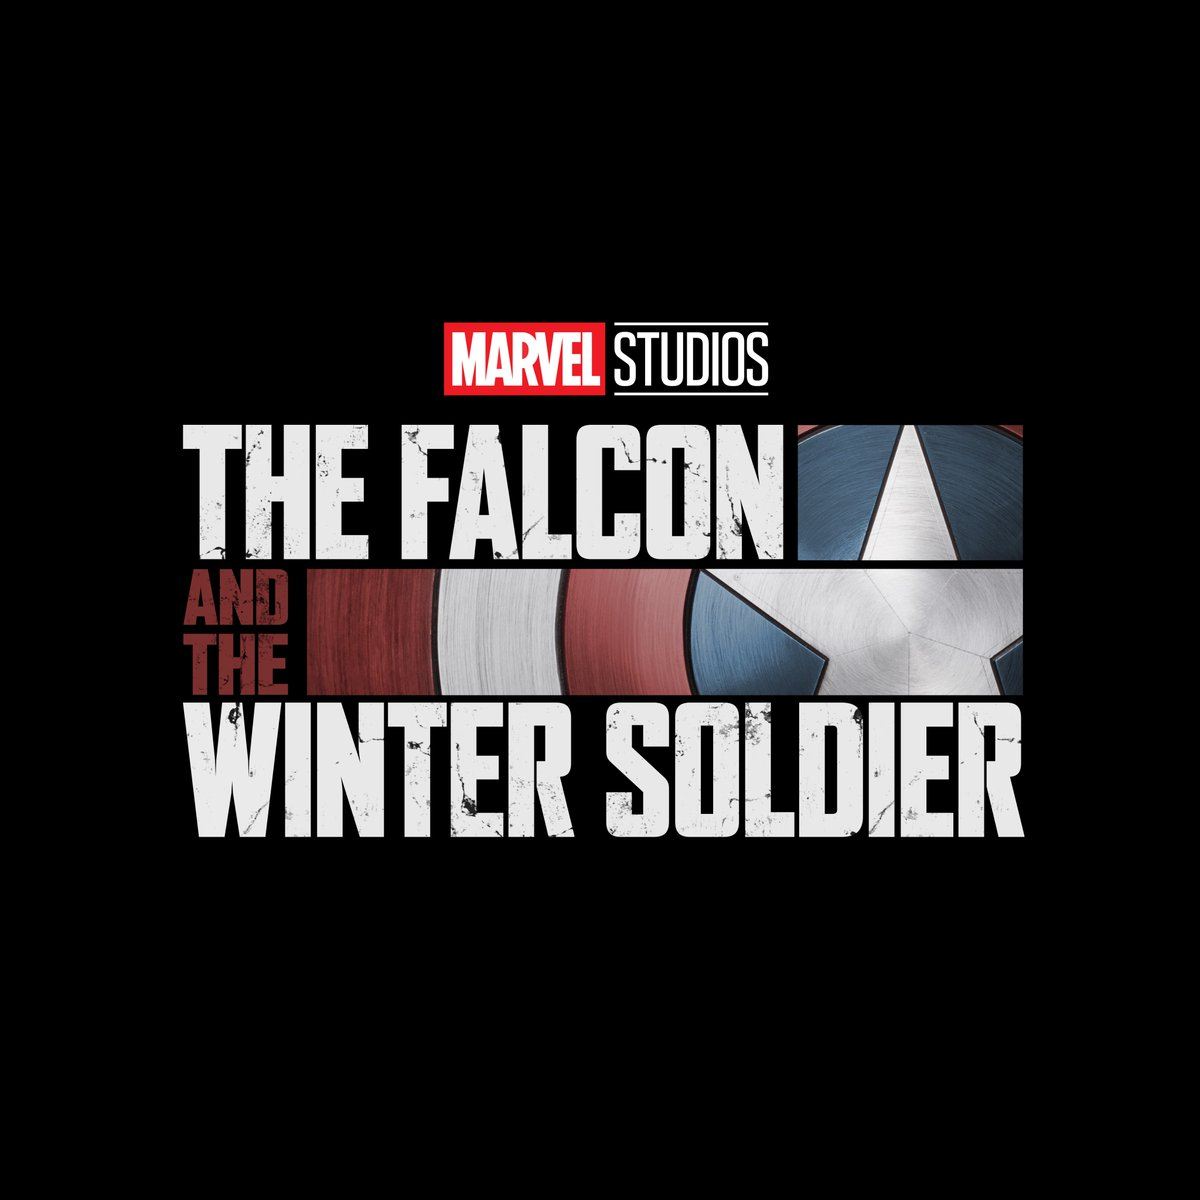 The Falcon and the Winter Soldier da Marvel Studios.